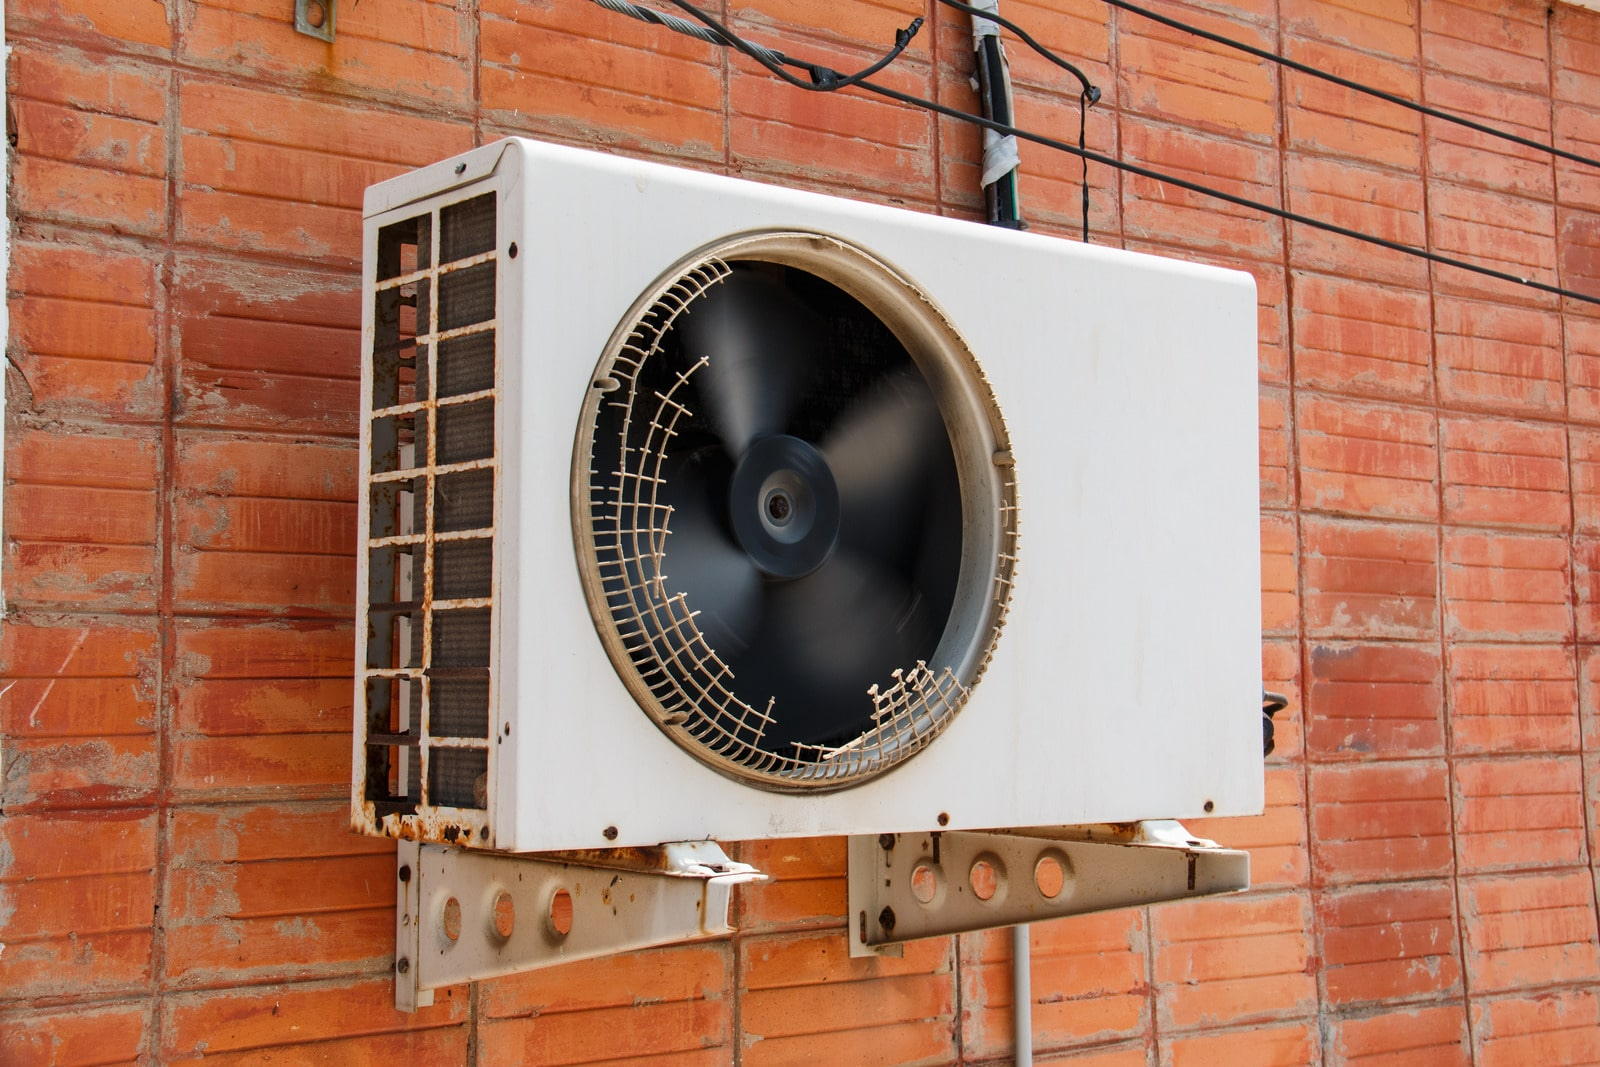 old compressor air-conditioner